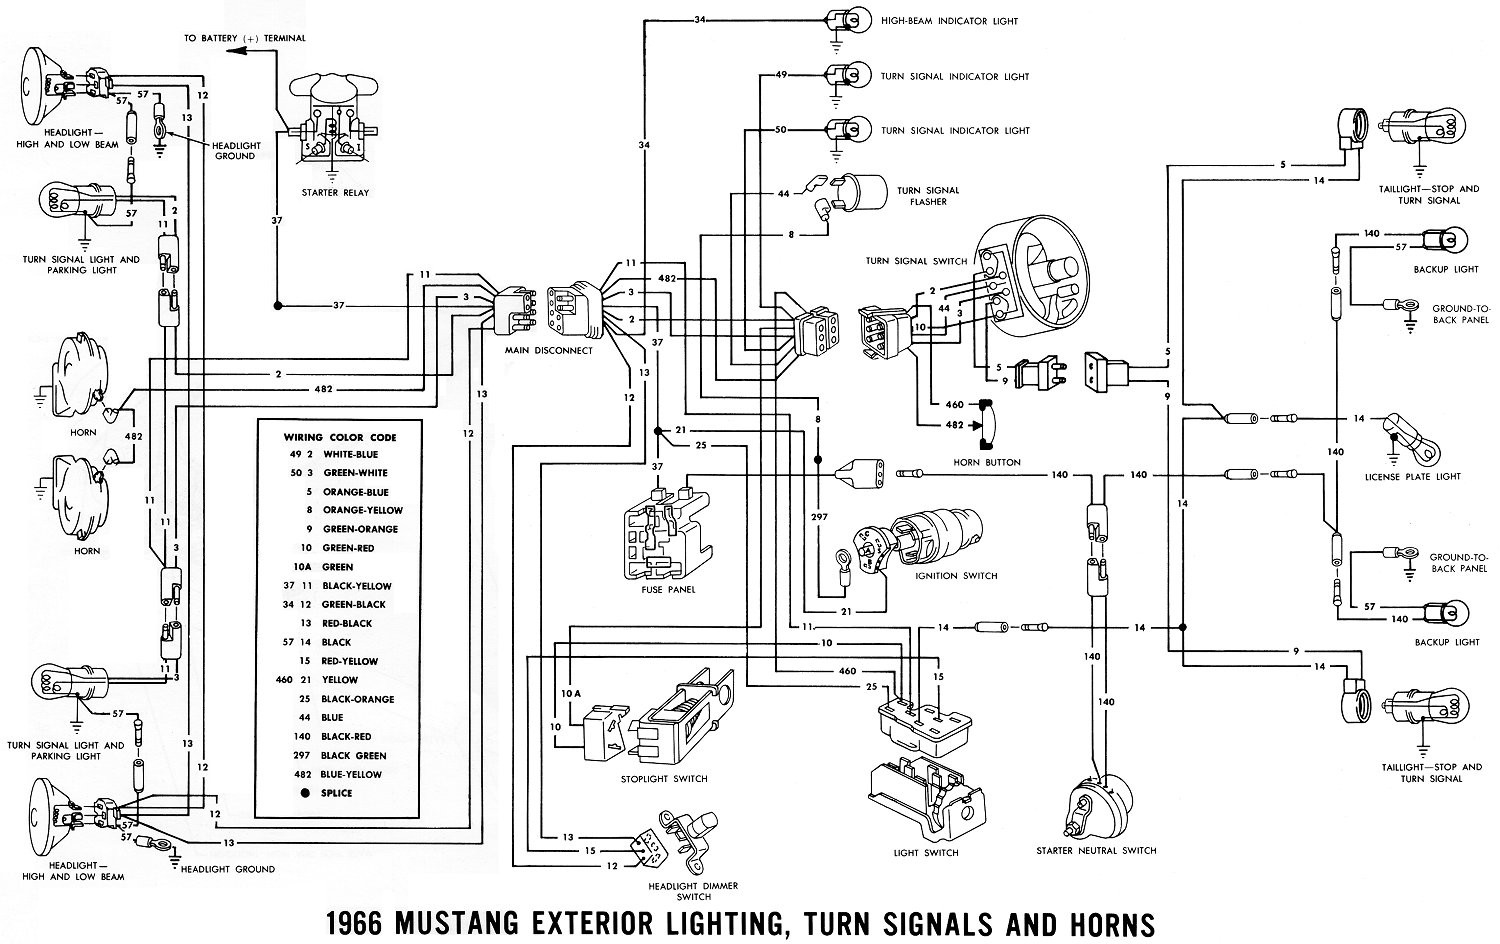 1967 mustang door wiring diagram auto electrical wiring diagram u2022 rh 6weeks co uk